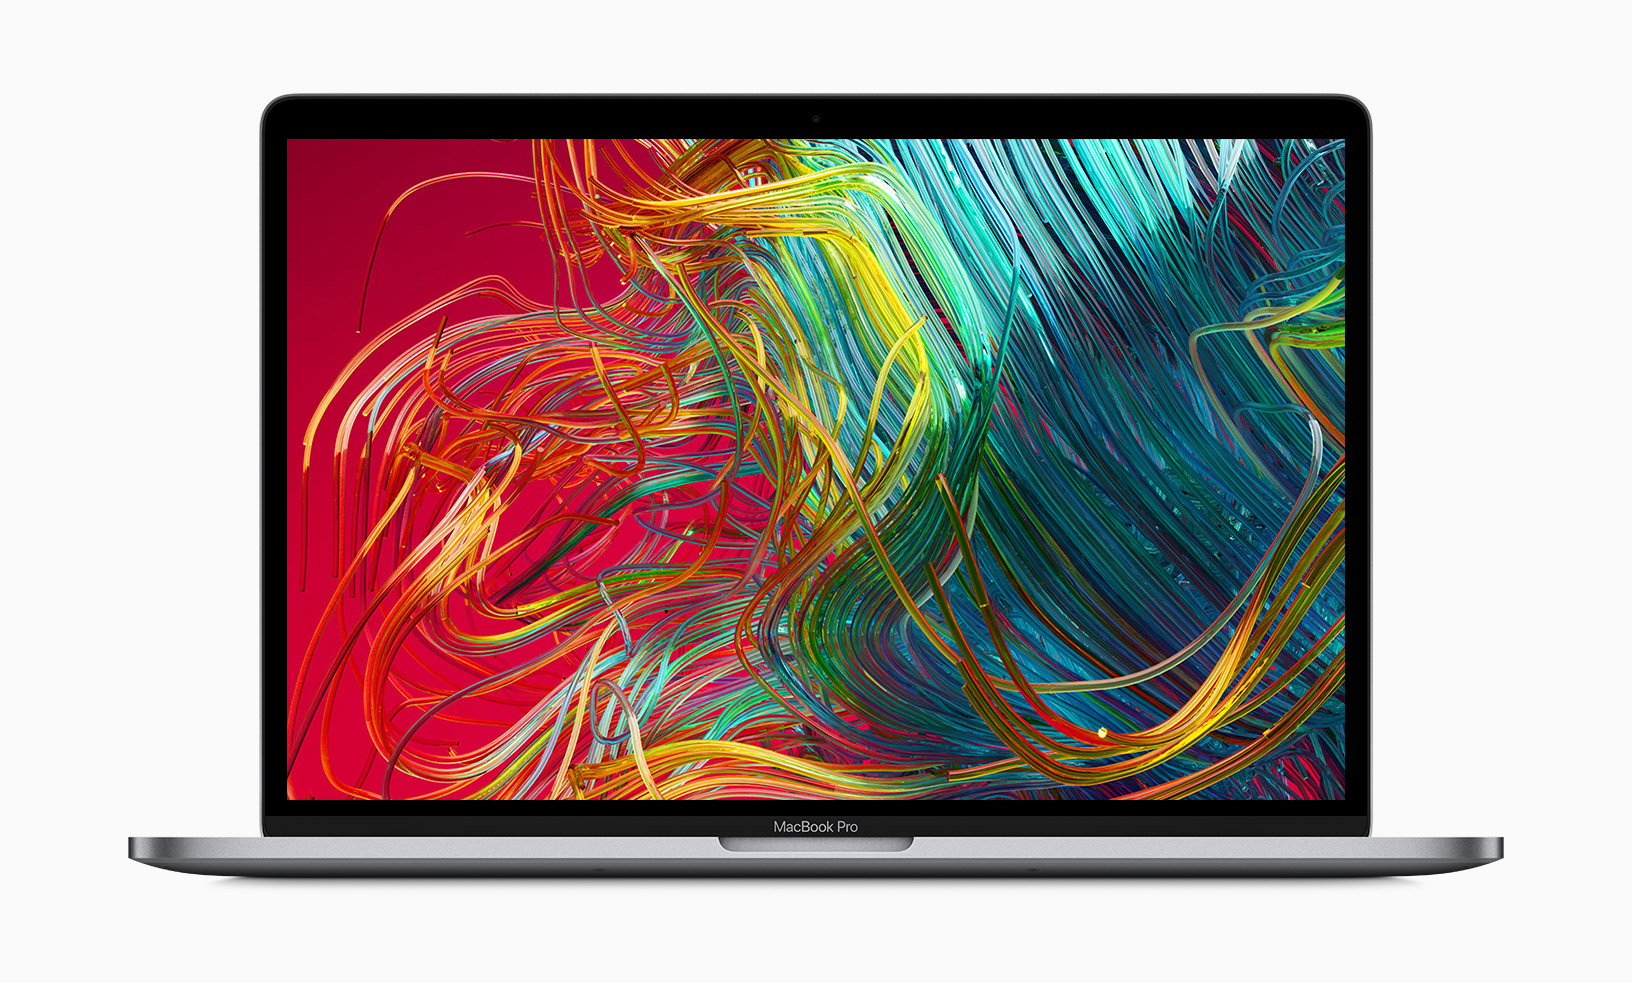 Nuovi MacBook Pro da Apple presso Shift a Como 2